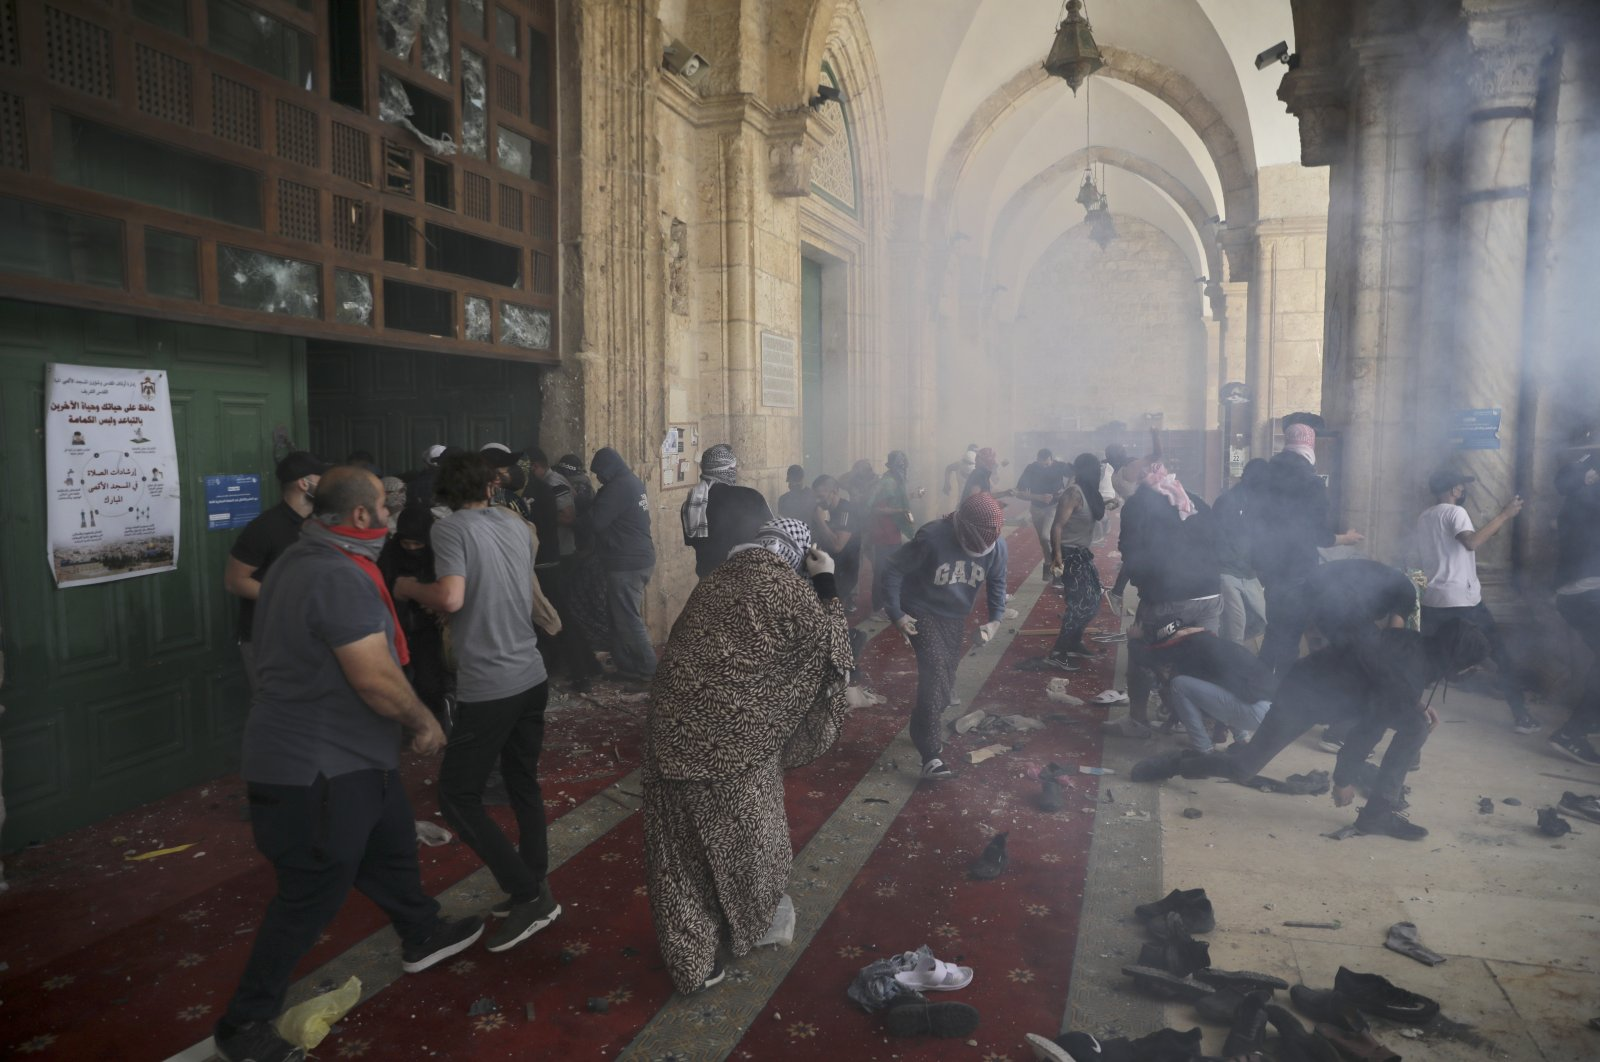 Israeli security forces attack unarmed Palestinian civilians at the Al-Aqsa Mosque compound in the Old City, East Jerusalem, occupied Palestine, May 10, 2021. (AP Photo)